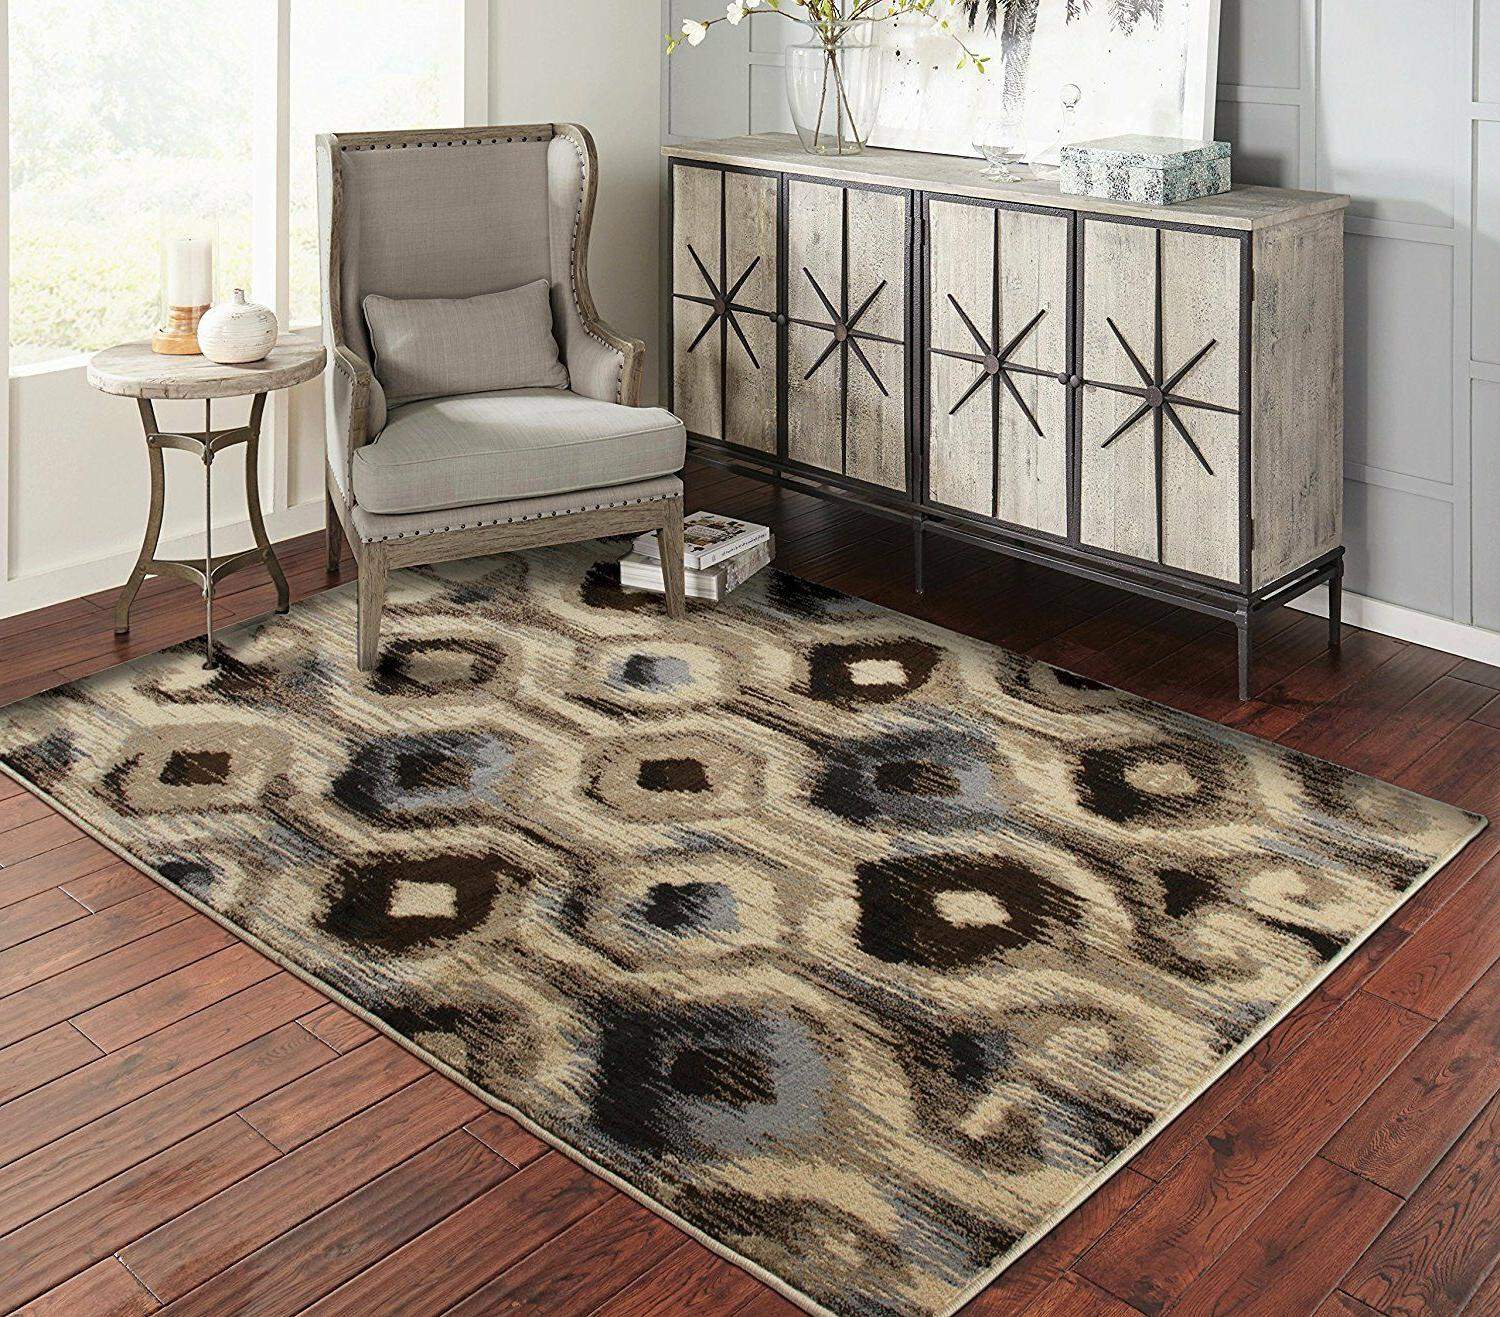 Modern Area Rugs for Living Room 8x10 Floral